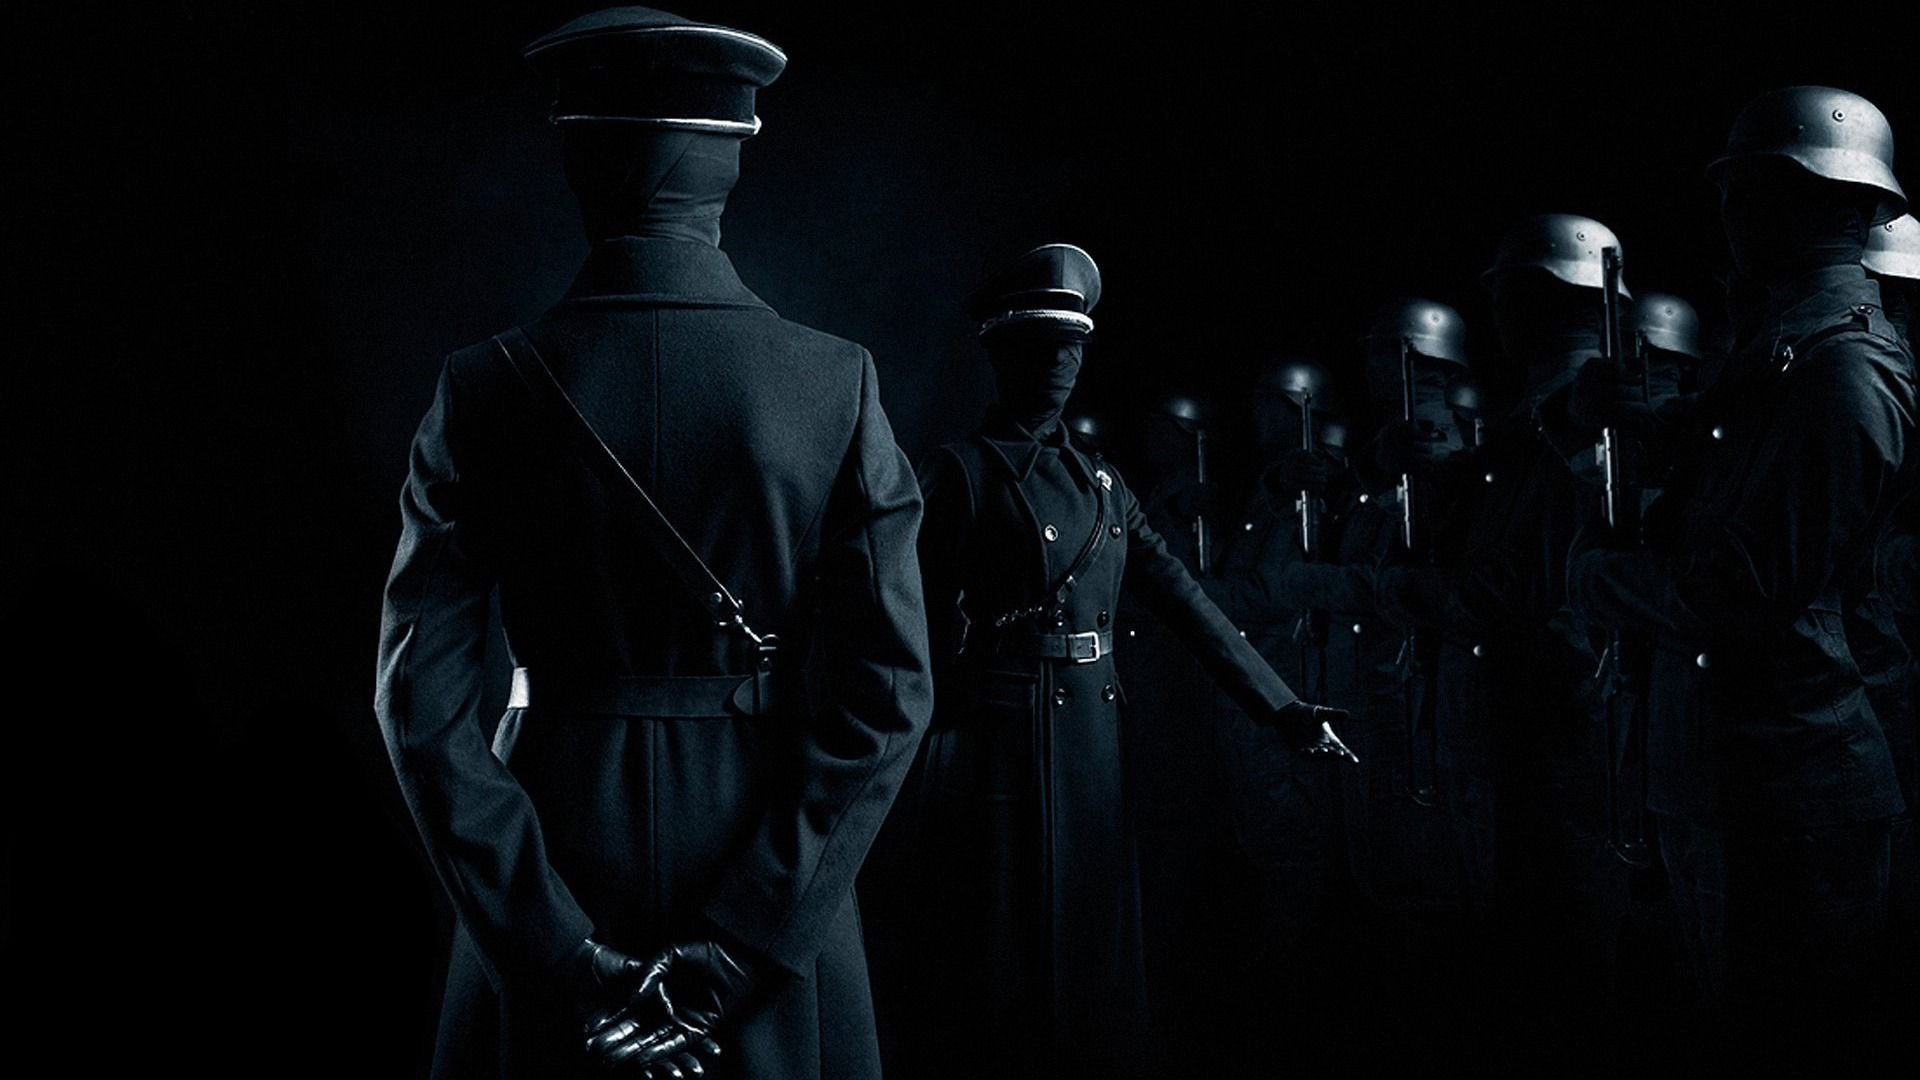 Hd wallpaper evil - Anonymous Wallpapers Anonymous Army Wallpaper Celwall Com Art Wallpapers Inspiration Antractia Photo Wallpaper Pinterest Army Wallpaper